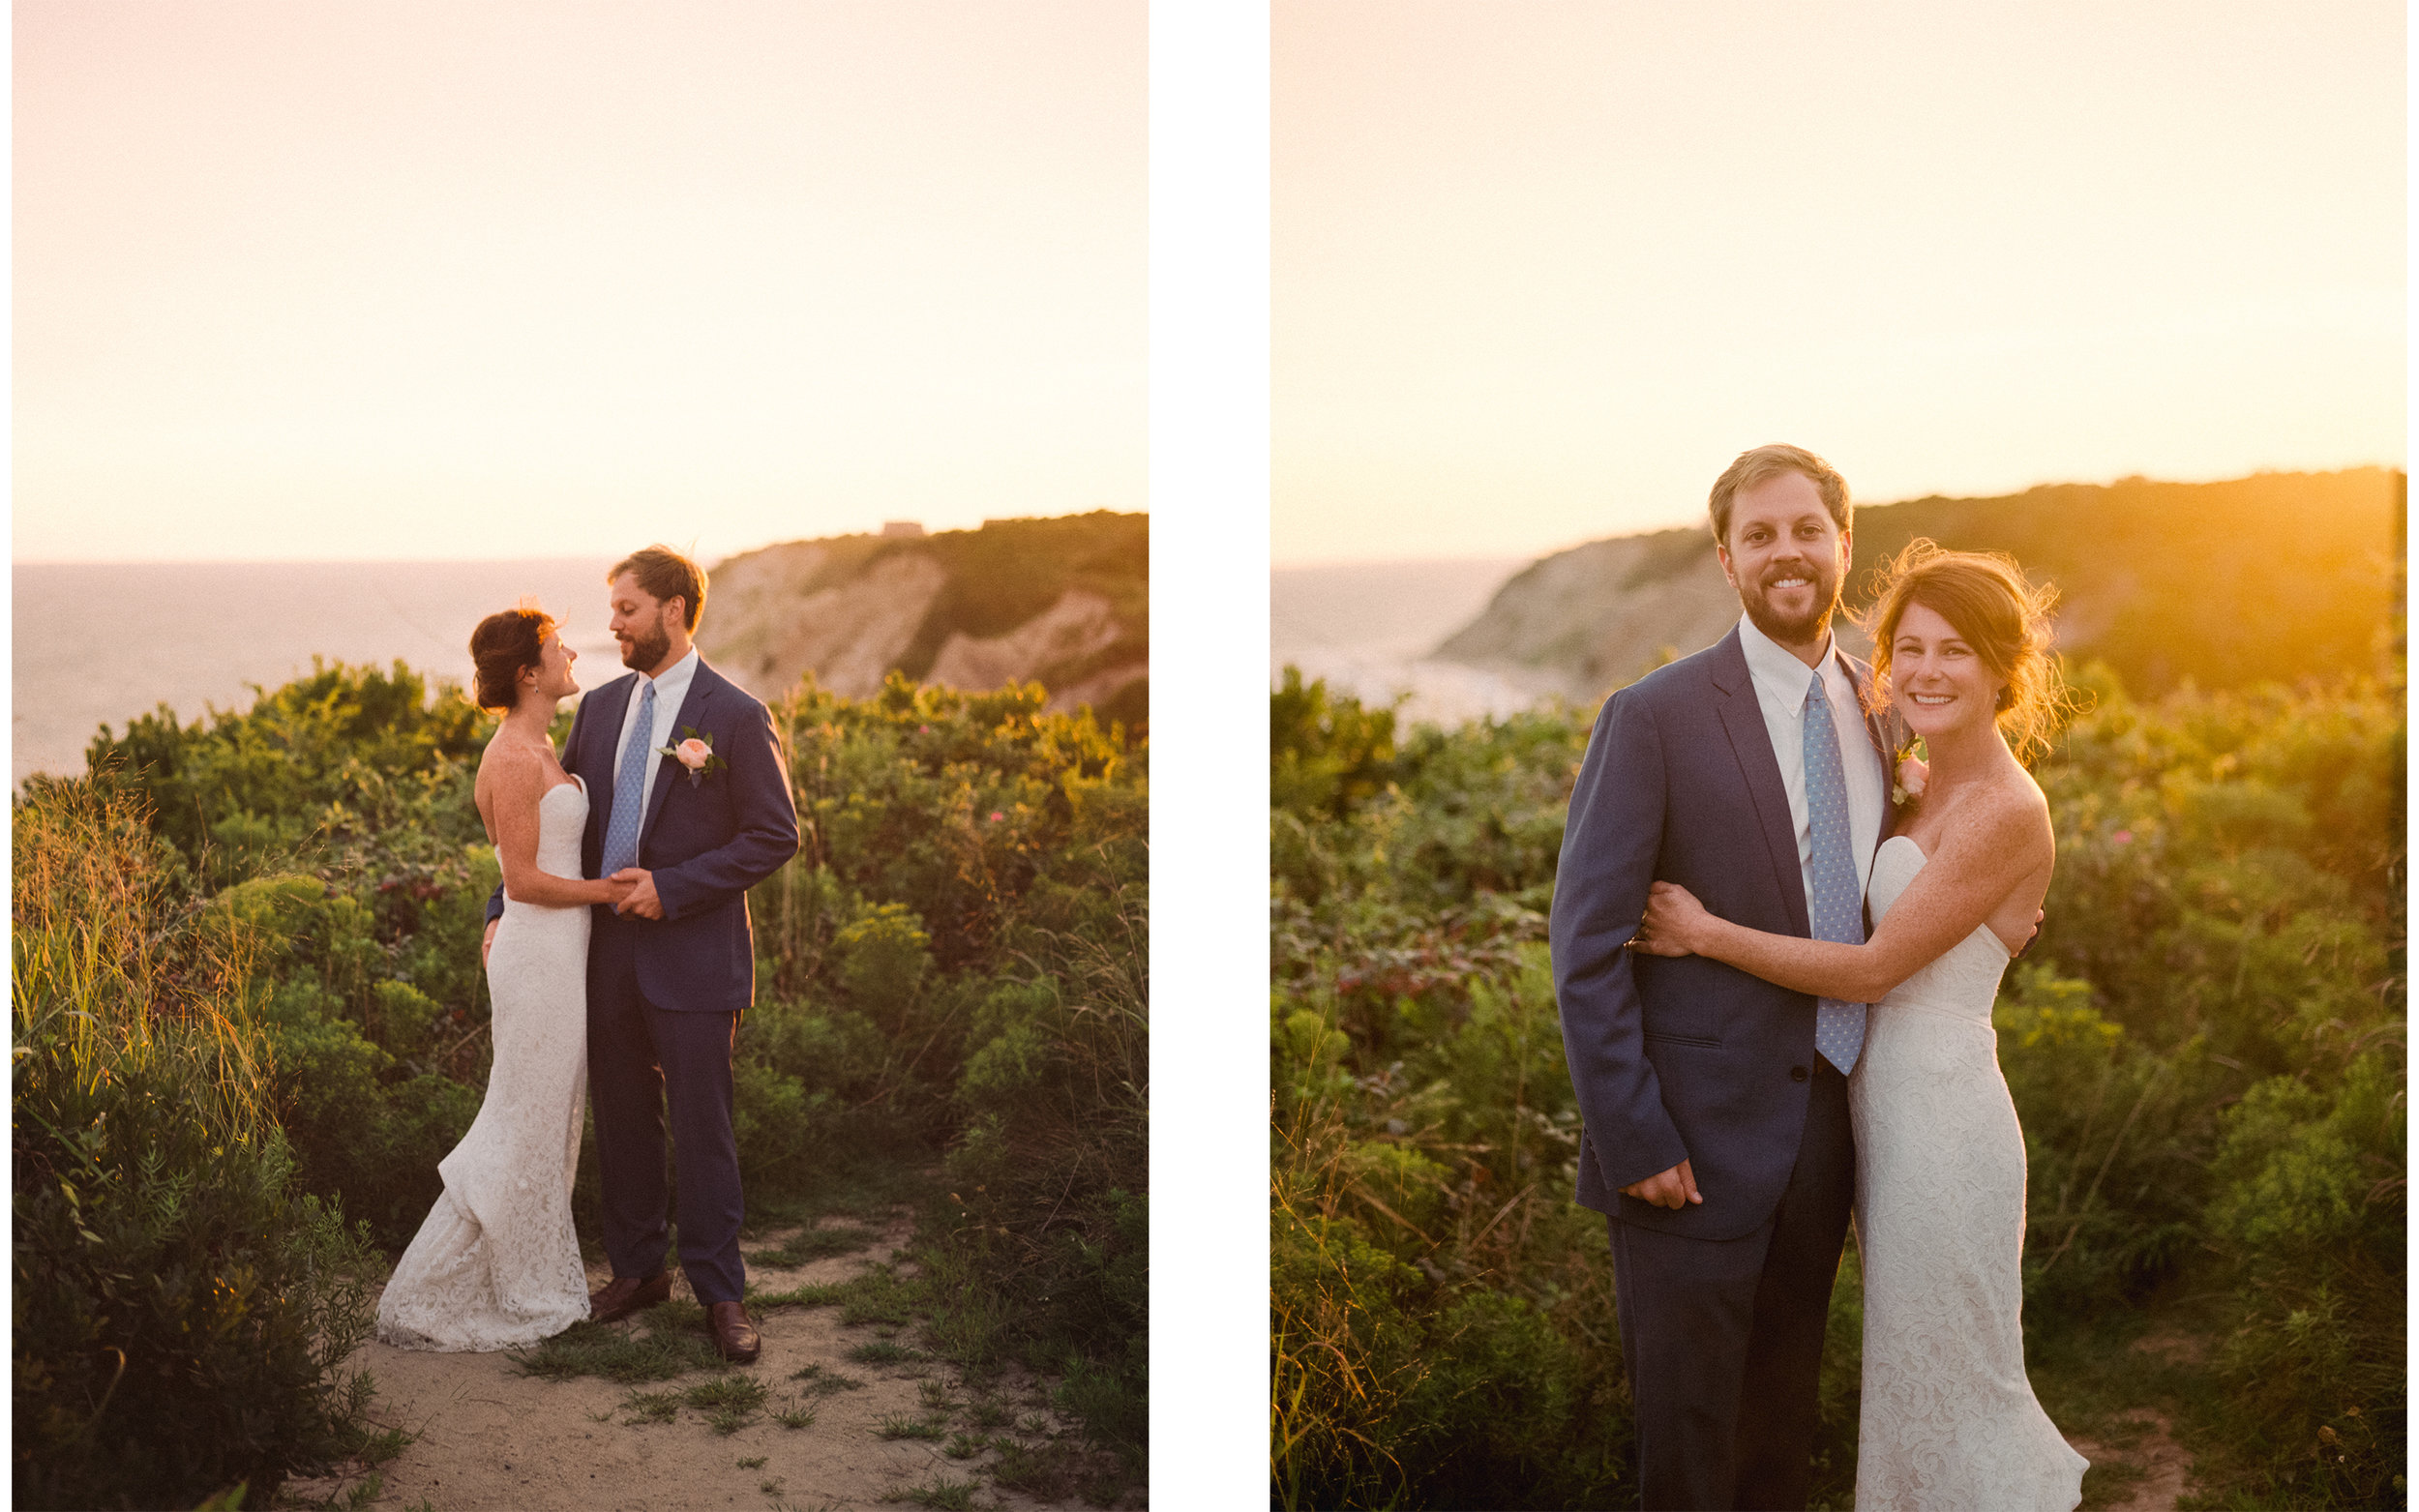 Spring House Wedding on Block Island, Rhode Island. Photographed by fine art wedding photographer Meg Haley Photographs